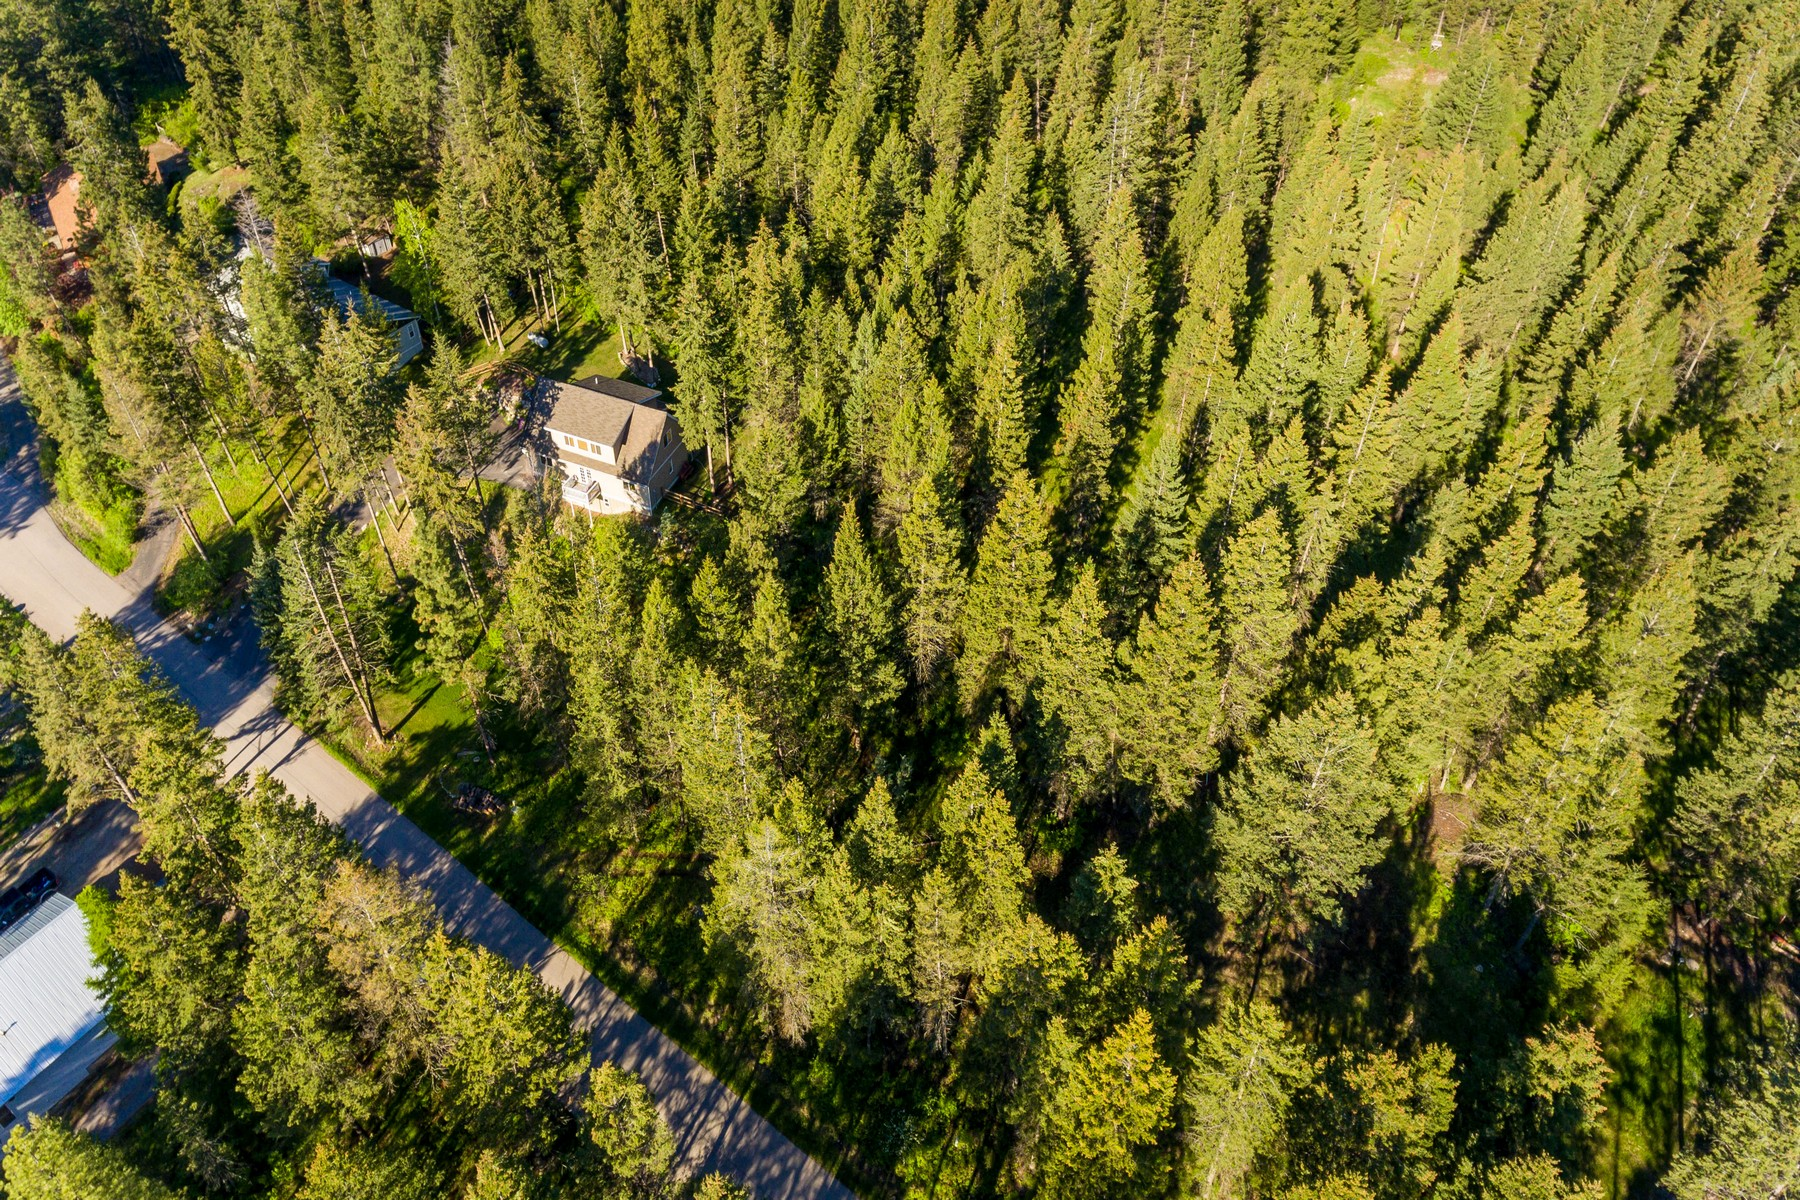 Additional photo for property listing at 110 Grandview Terrace, Lakeside, MT 59922 110  Grandview Terr Lakeside, Montana 59922 United States